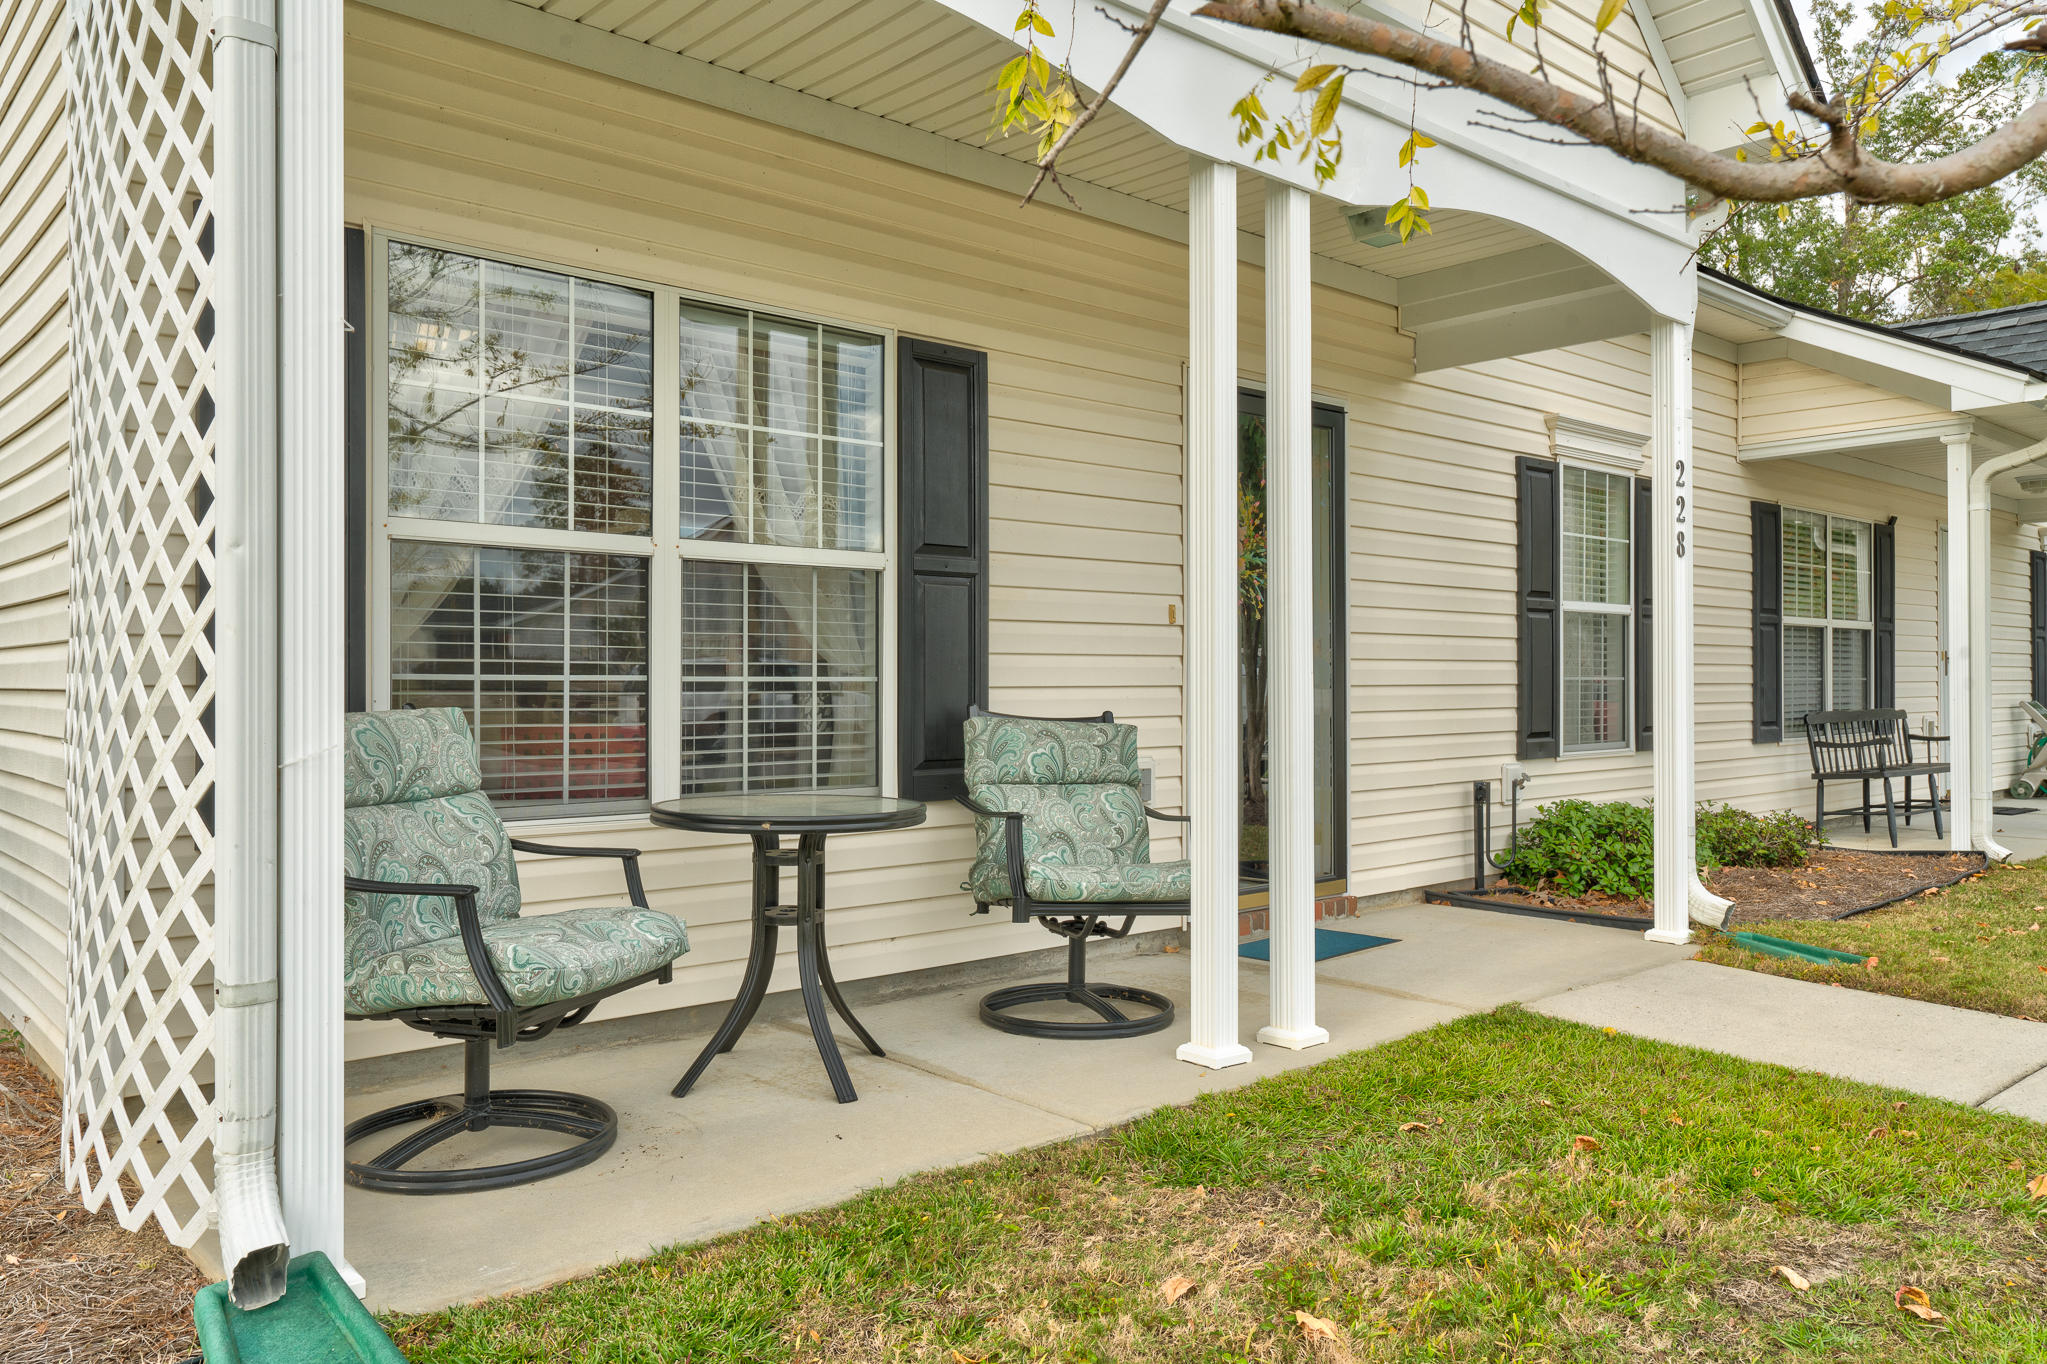 Oakbrook Commons Homes For Sale - 228 Hardee, Summerville, SC - 10